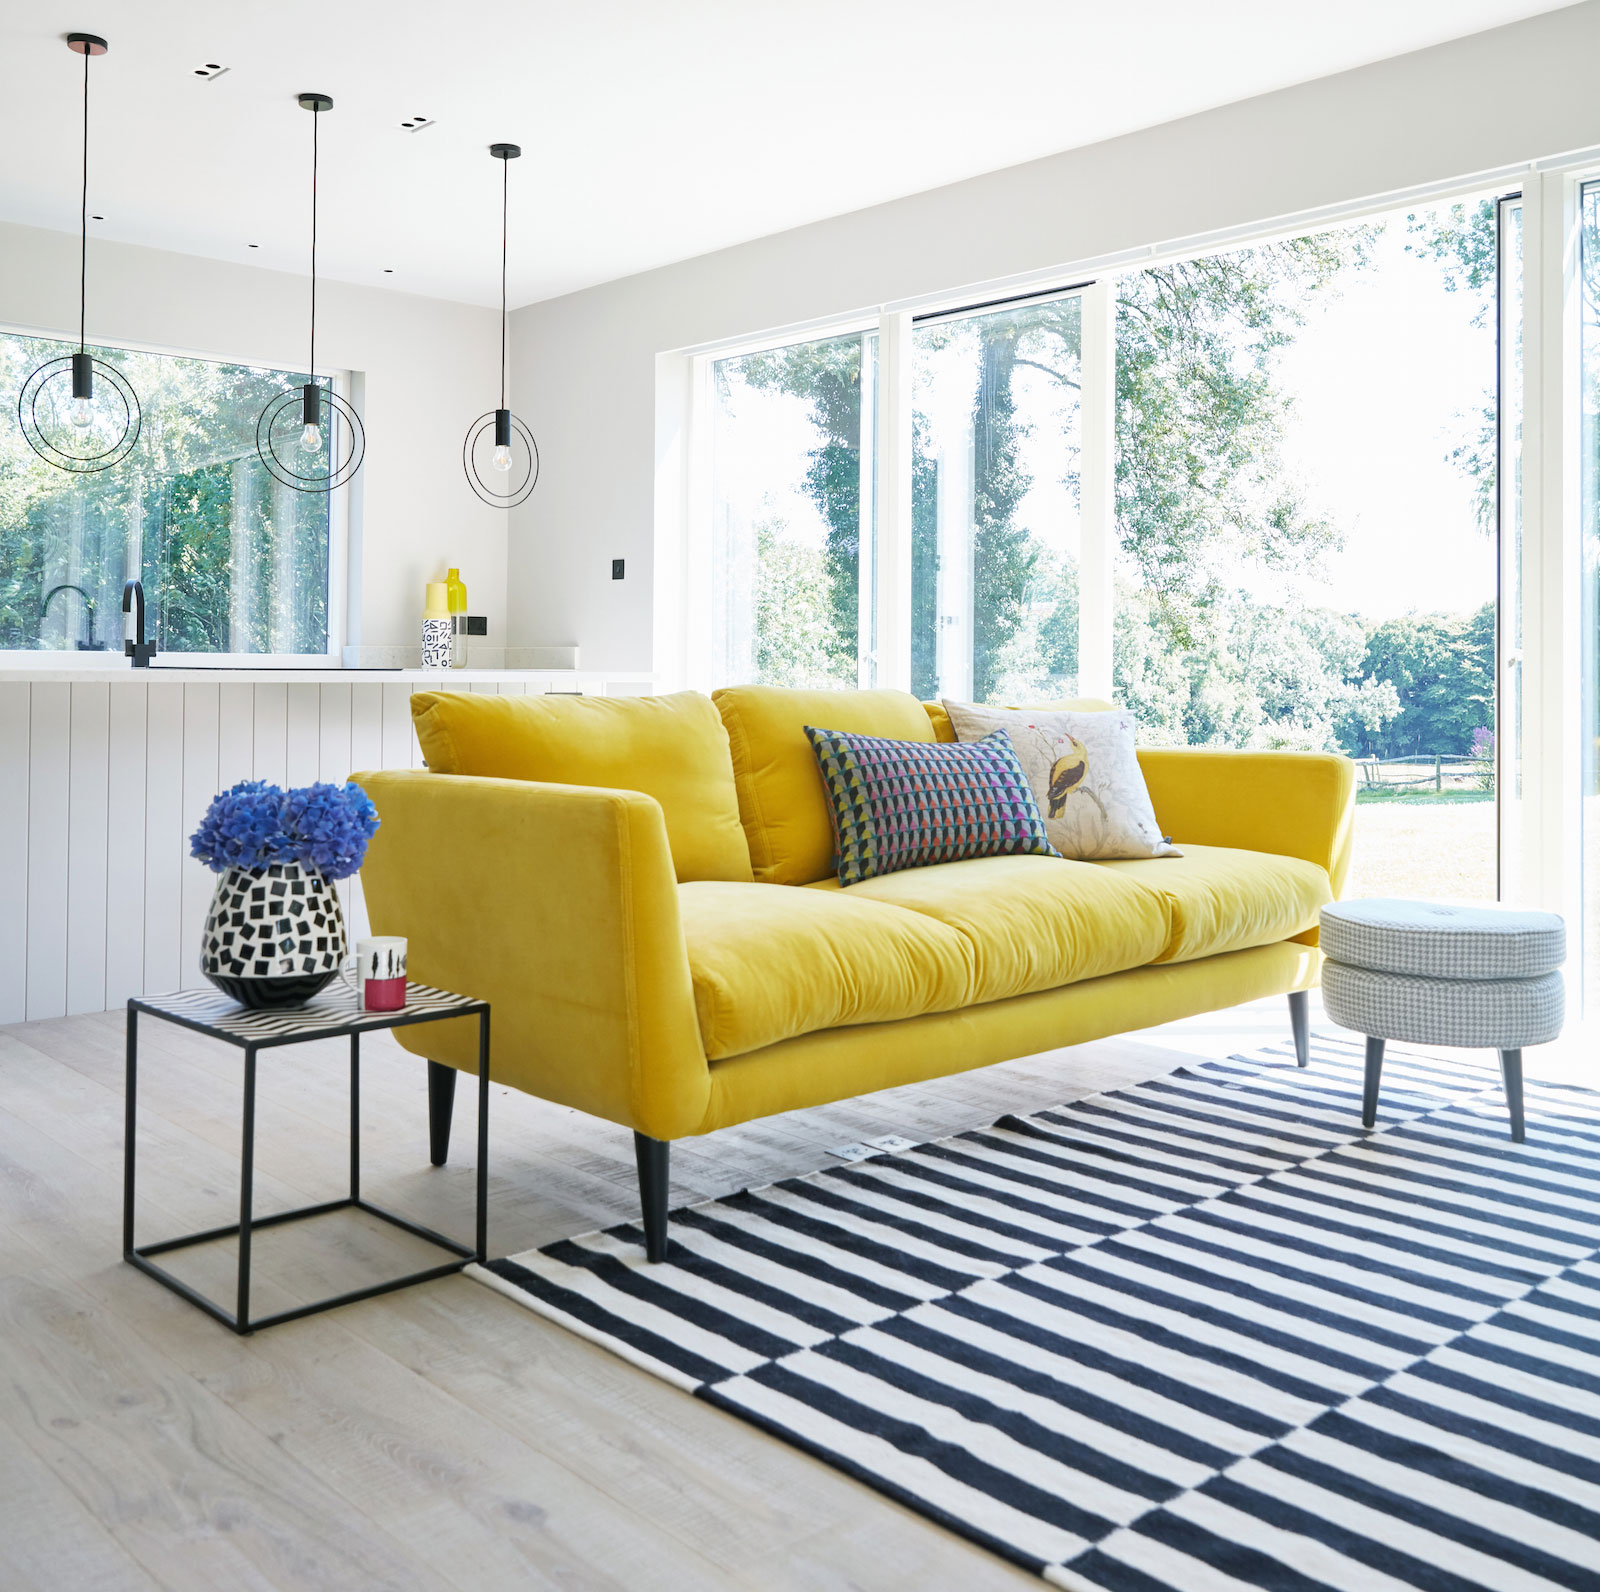 That yellow velvet sofa sophie robinson - Yellow interior house design photos ...